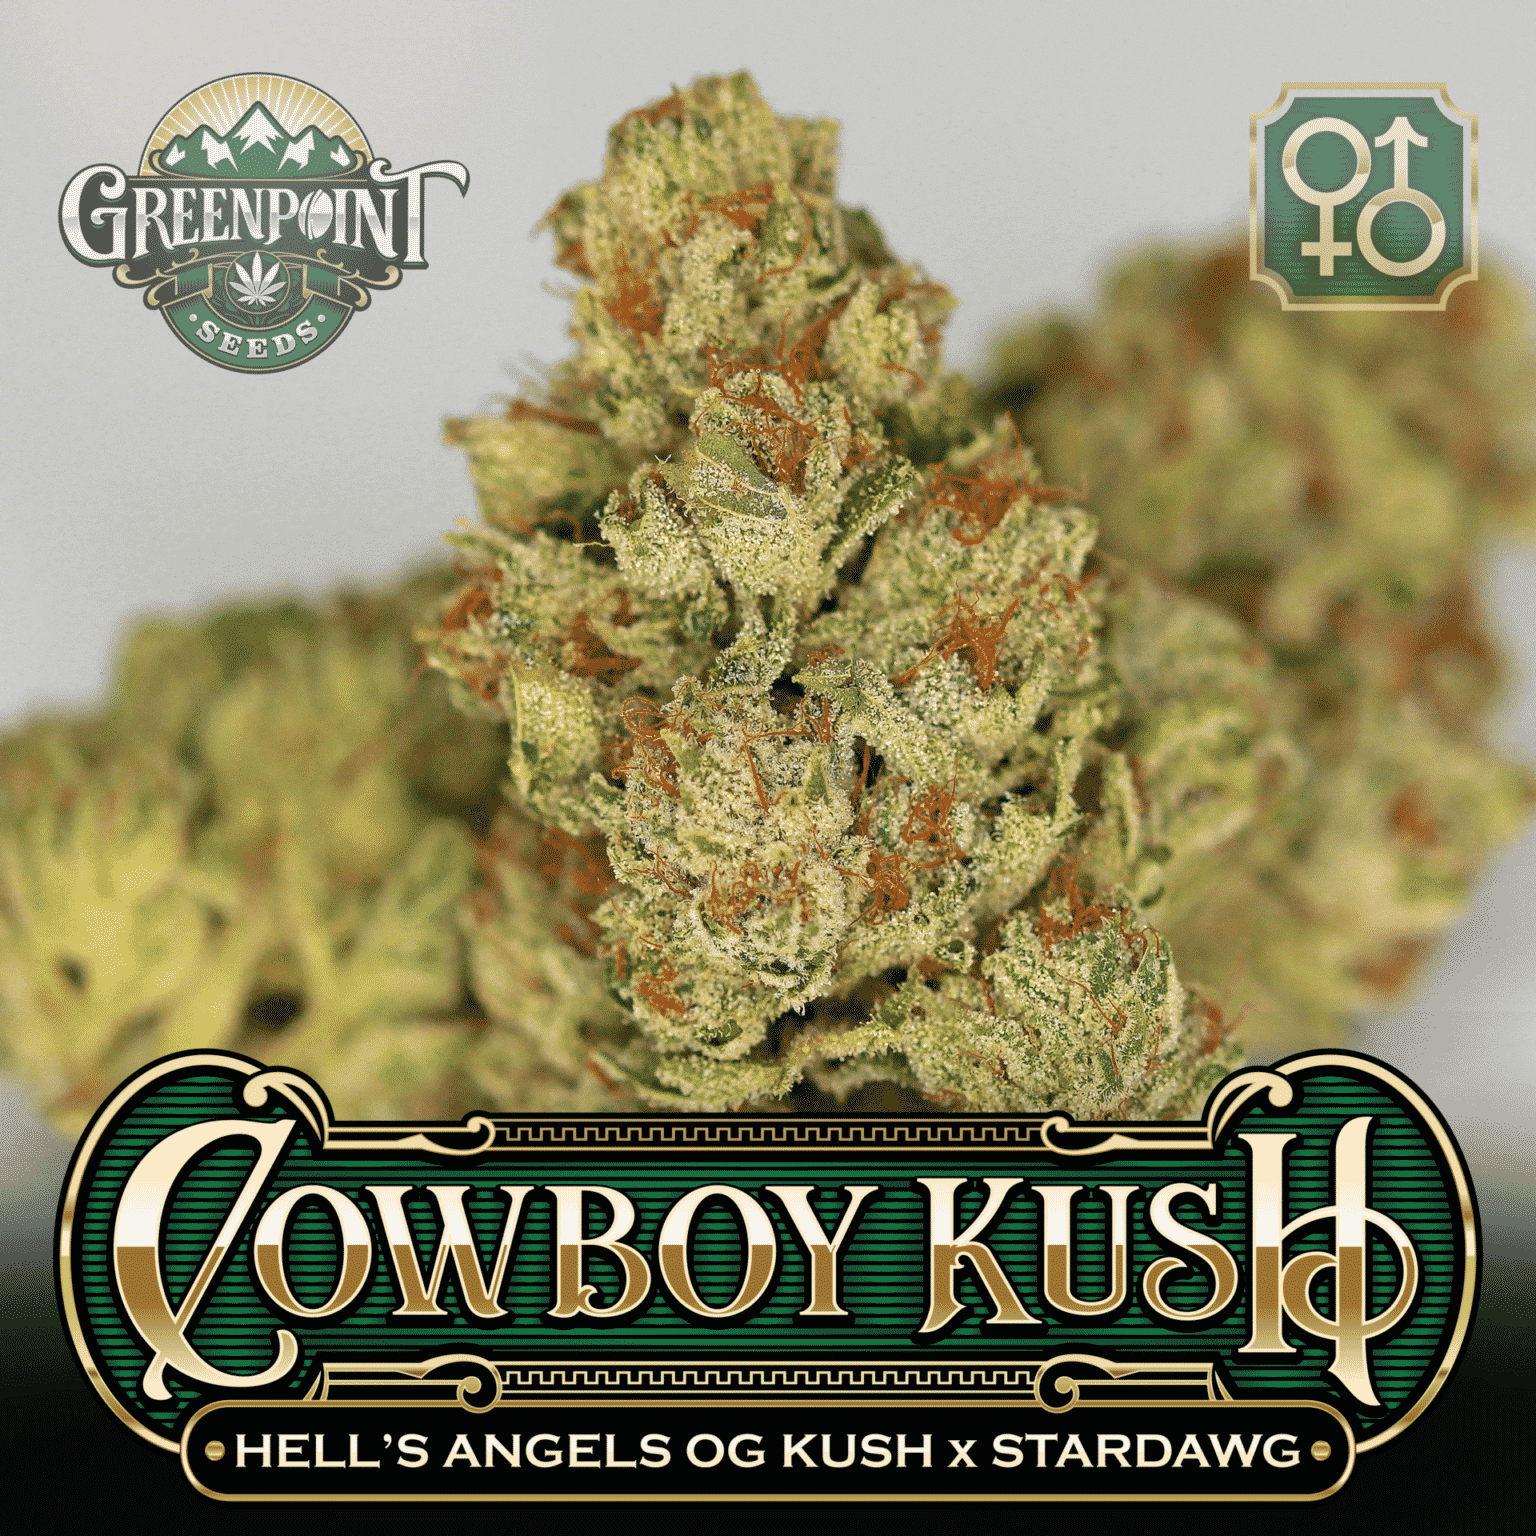 Hell's Angels OG Kush x Stardawg Seeds | Cowboy Kush Cannabis Seeds - US Seed Bank